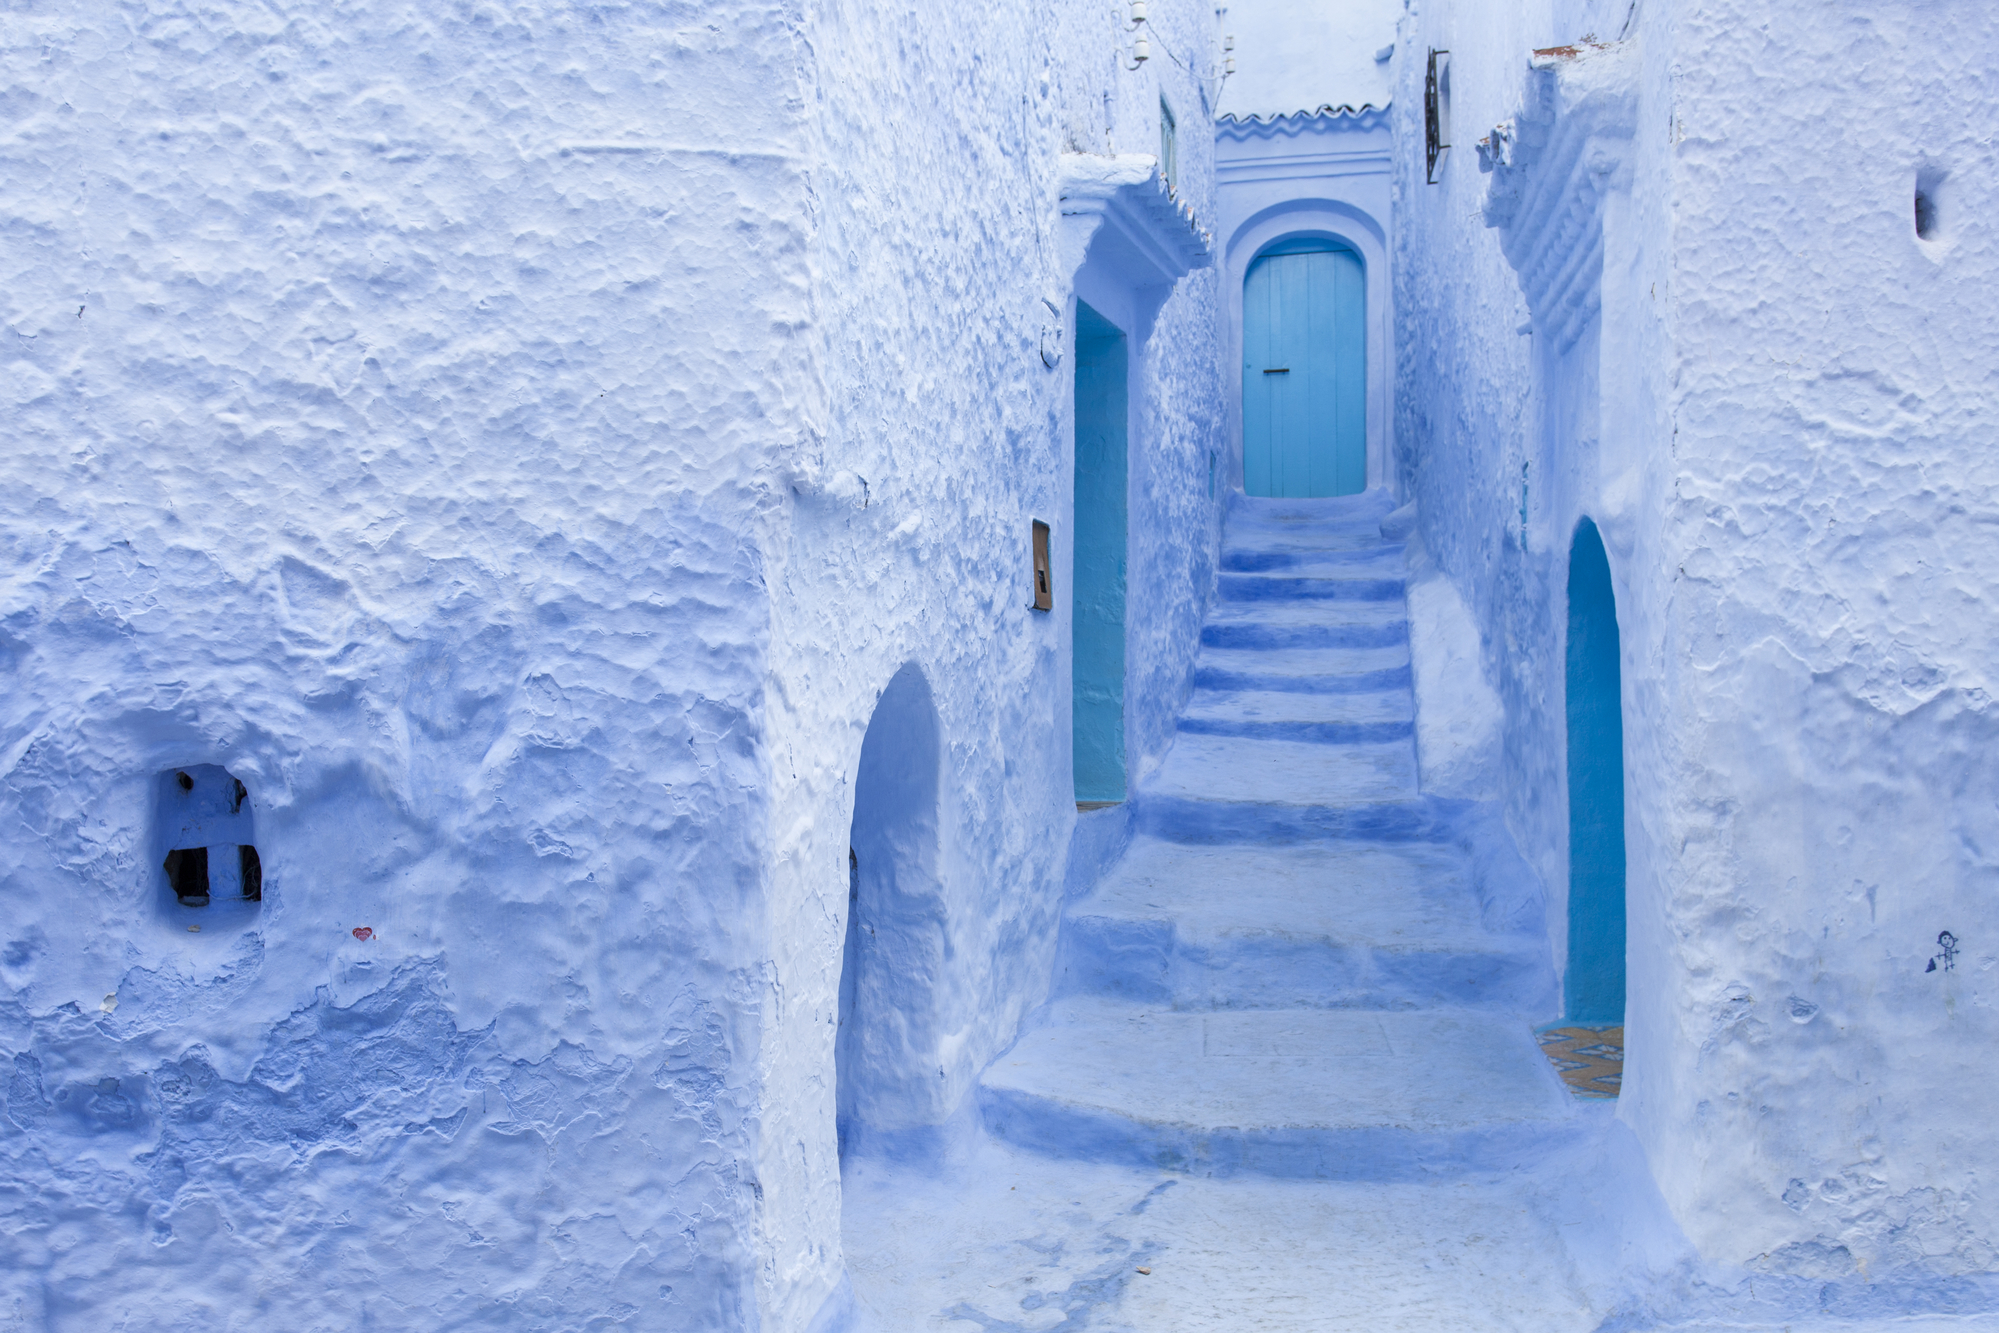 Chefchaouen-tile-art-city